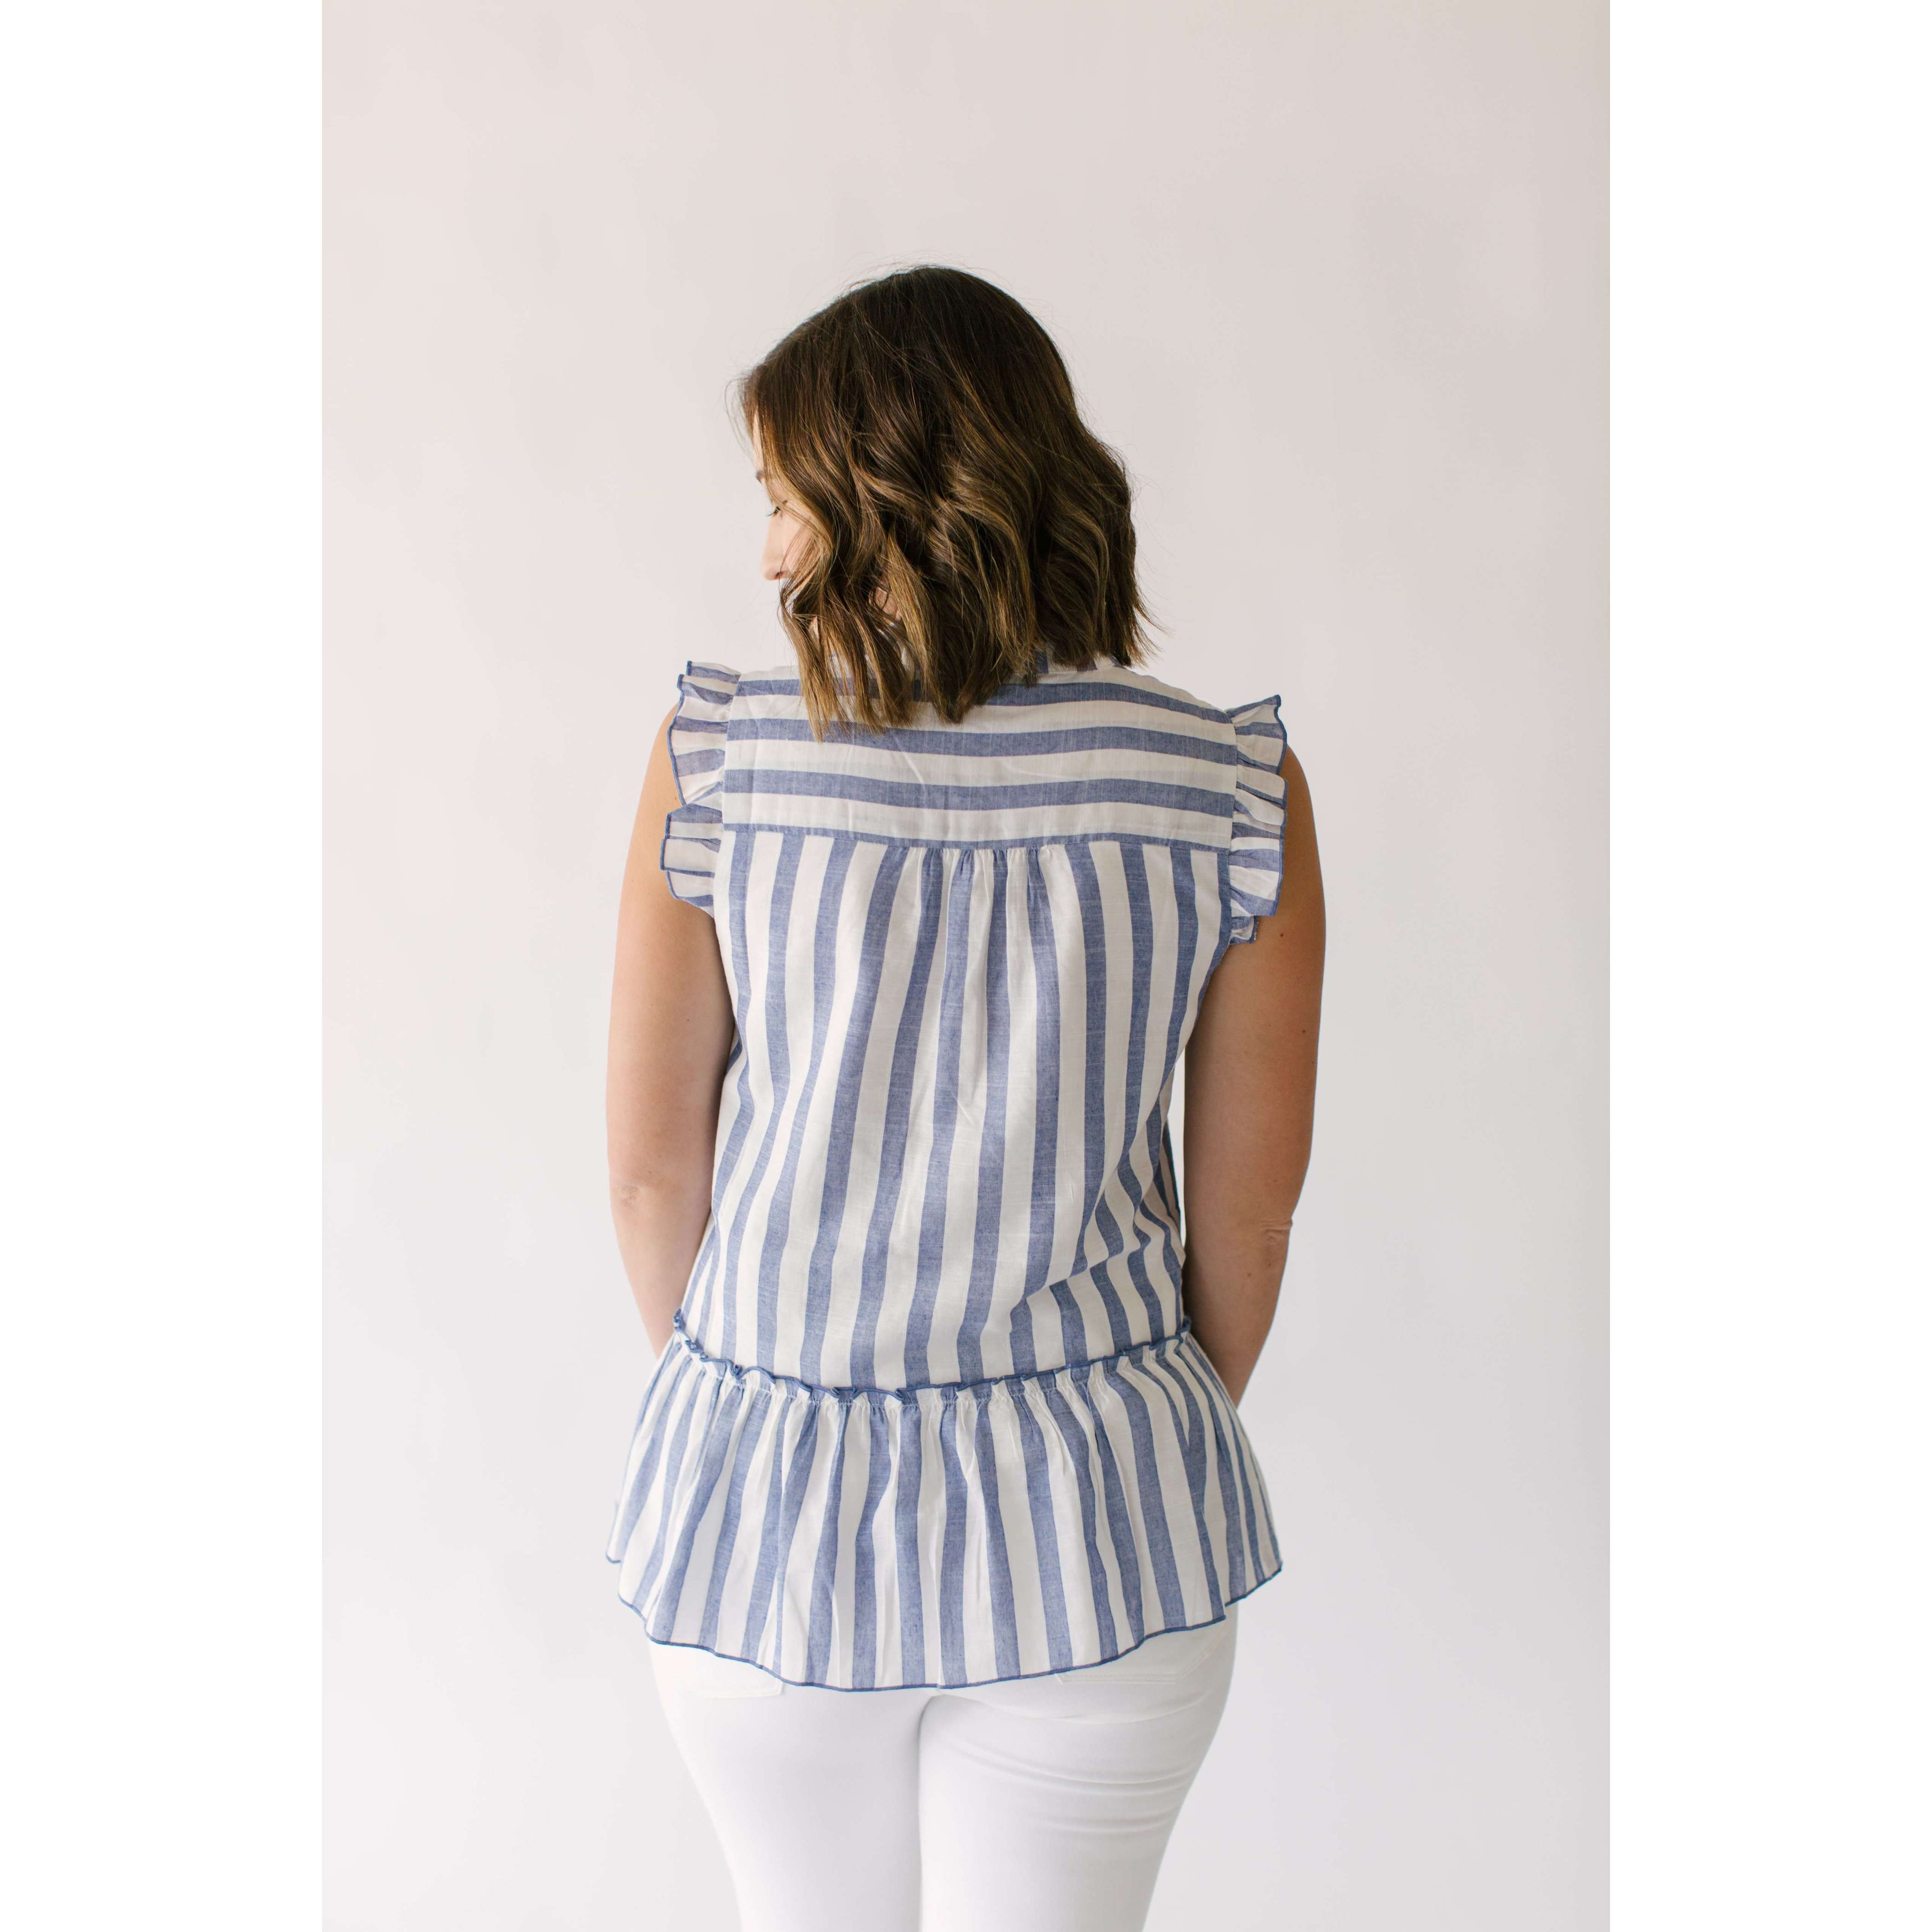 8.28 Boutique:Joy*Joy,Joy*Joy Baby Blue's Ruffle Stripe Top,Tops